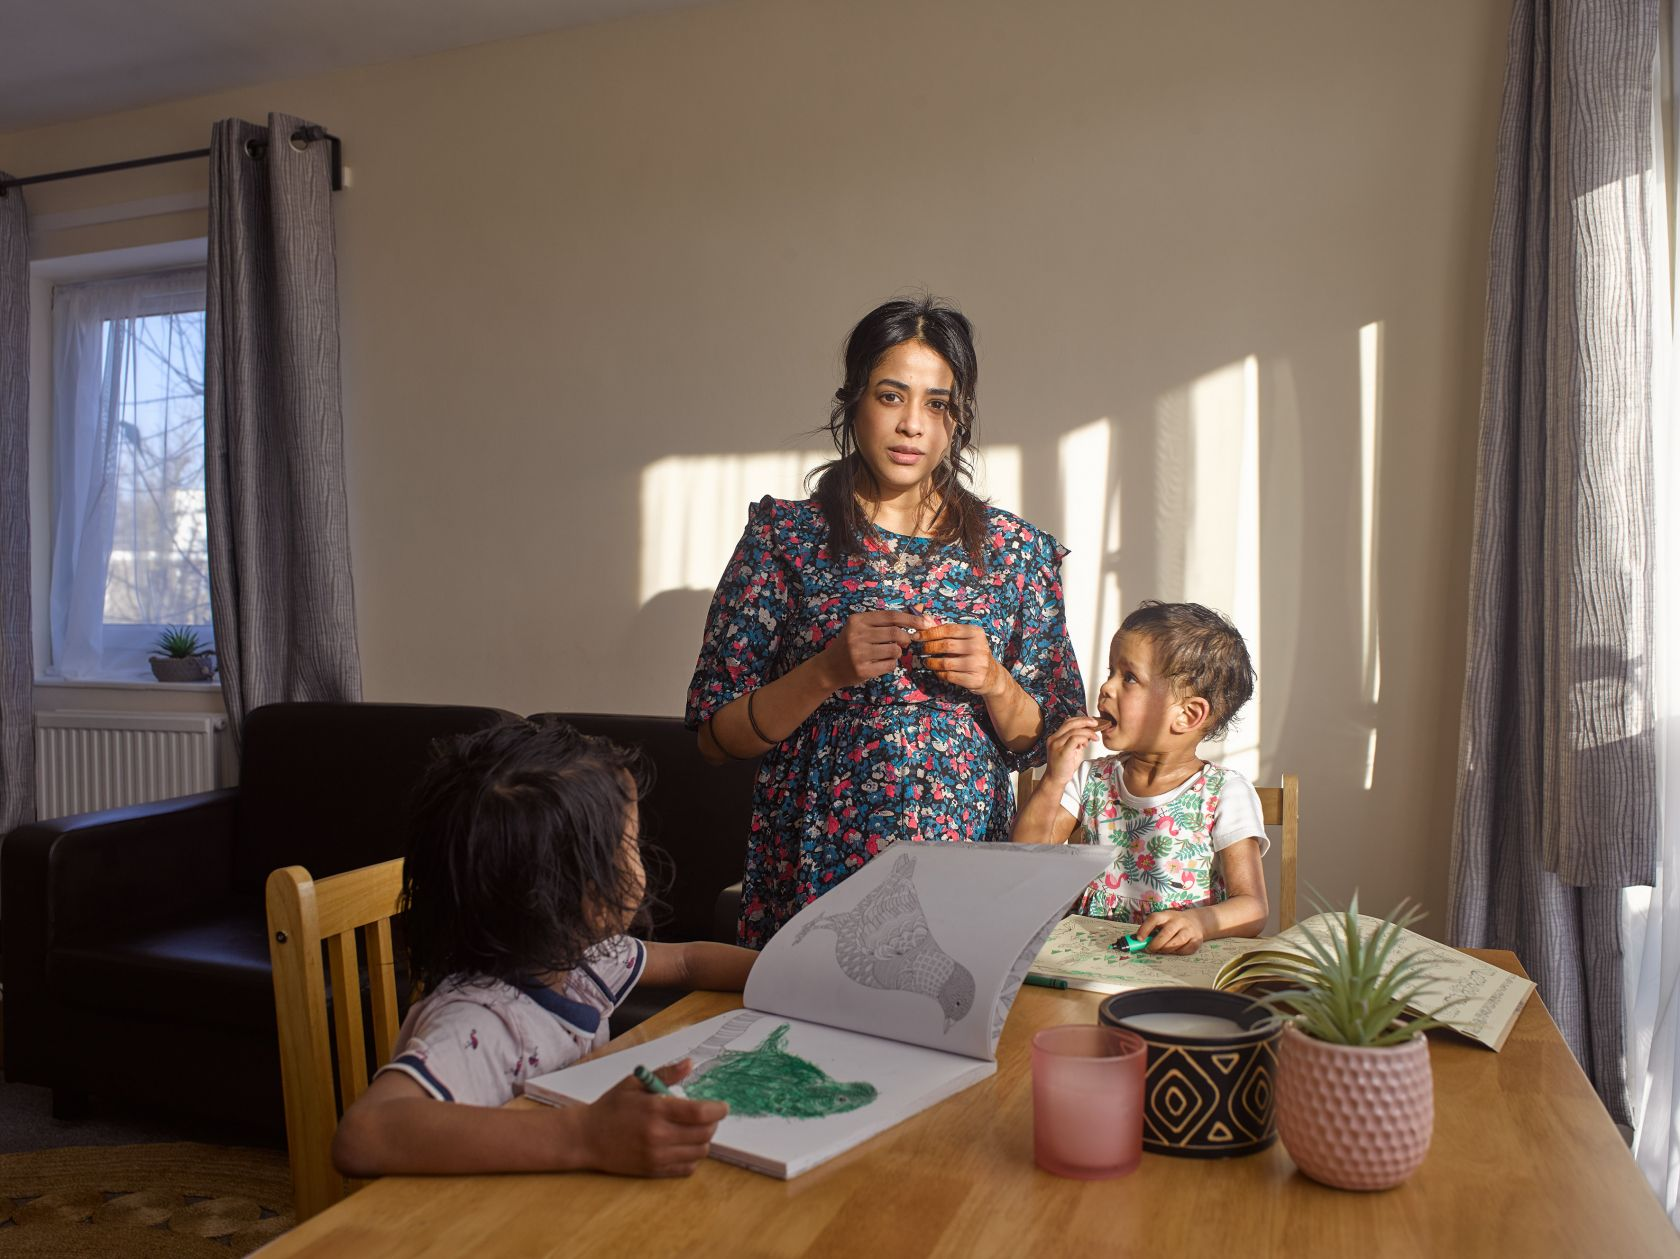 Holding the Baby: Photographer Polly Braden offers a glimpse into the lives of single-parent families on the poverty line